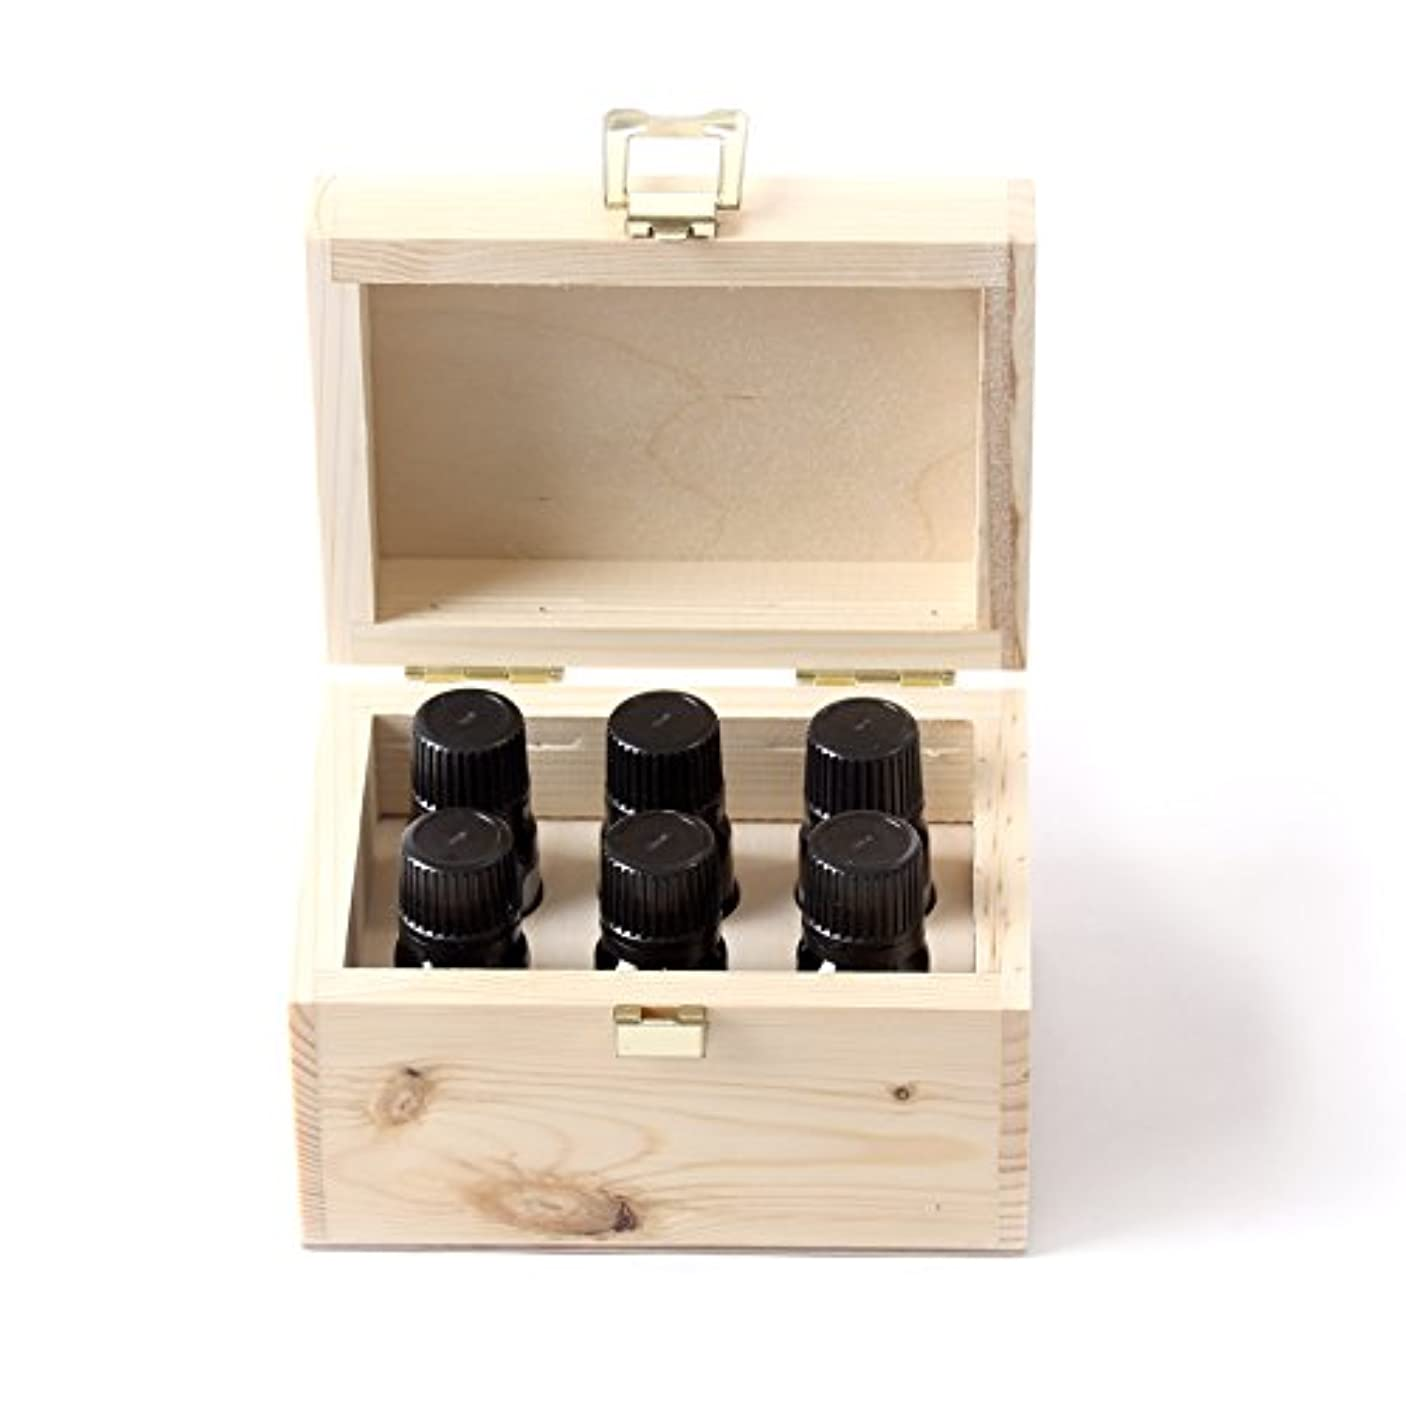 代名詞振り子することになっているMystic Moments | Essential Oil Starter Pack In Wooden Gift Box - 6 x 10ml - 100% Pure